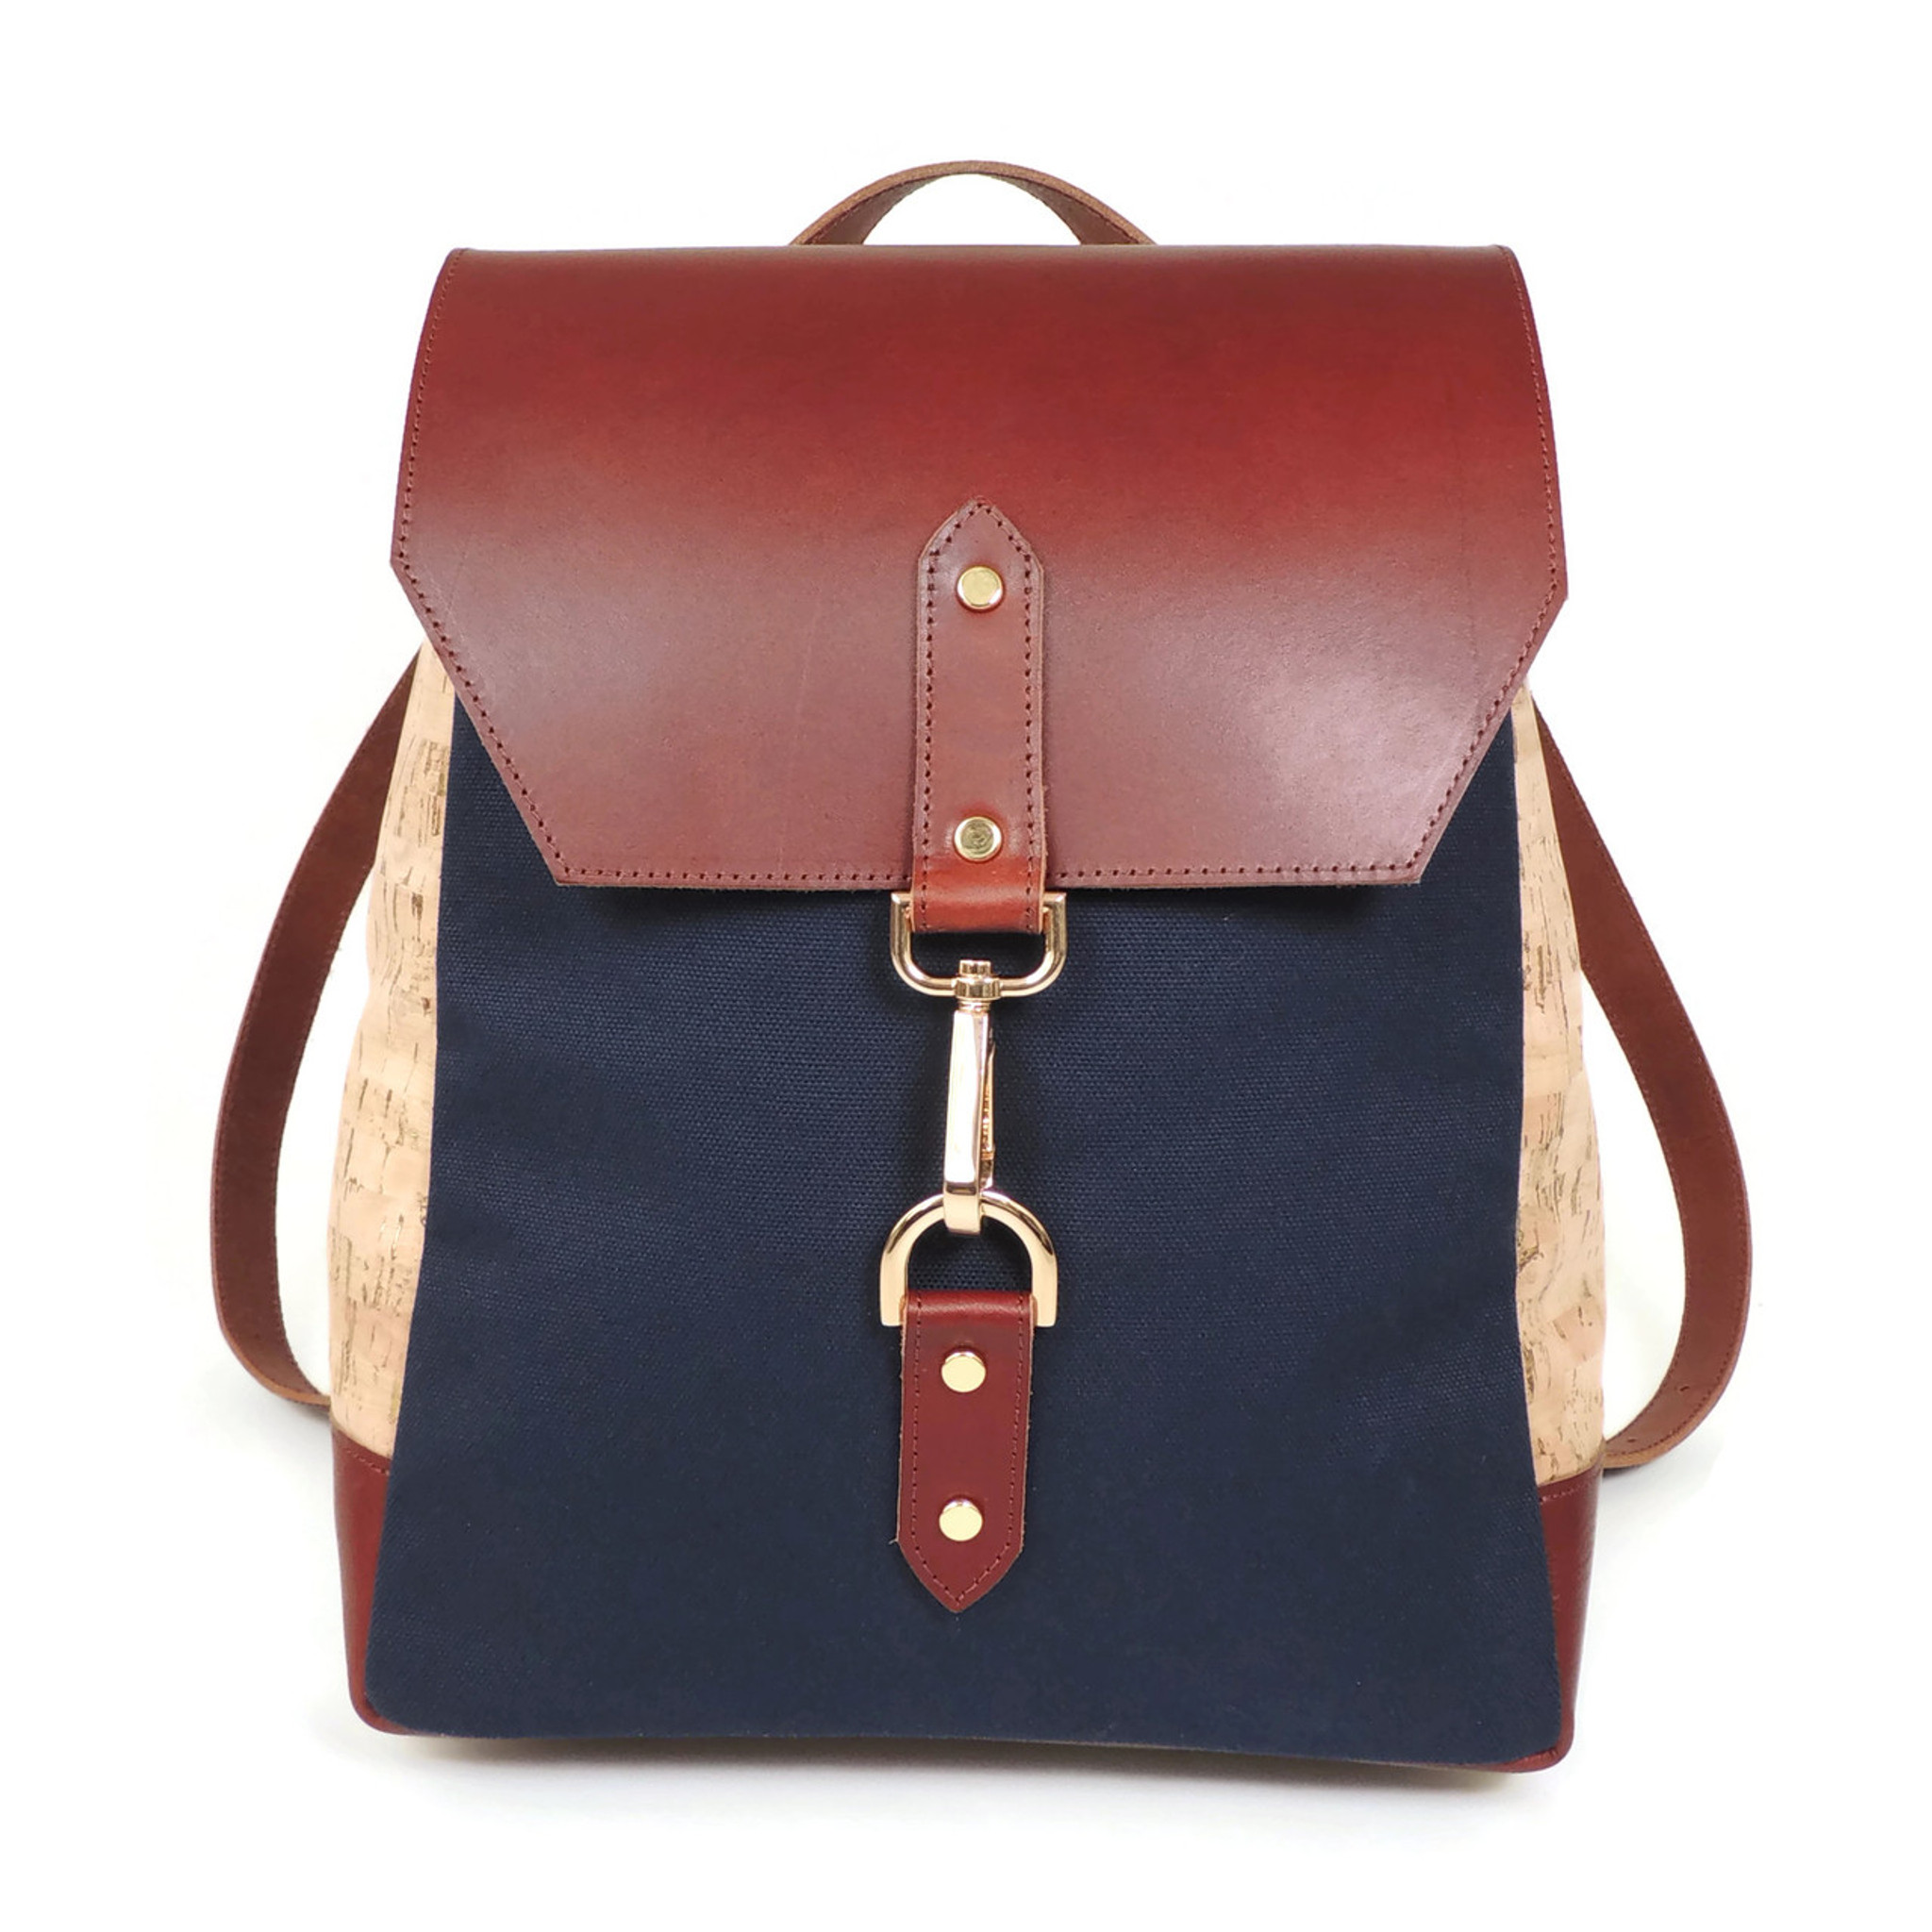 Cork & Leather Backpack in Cork Dash Gold